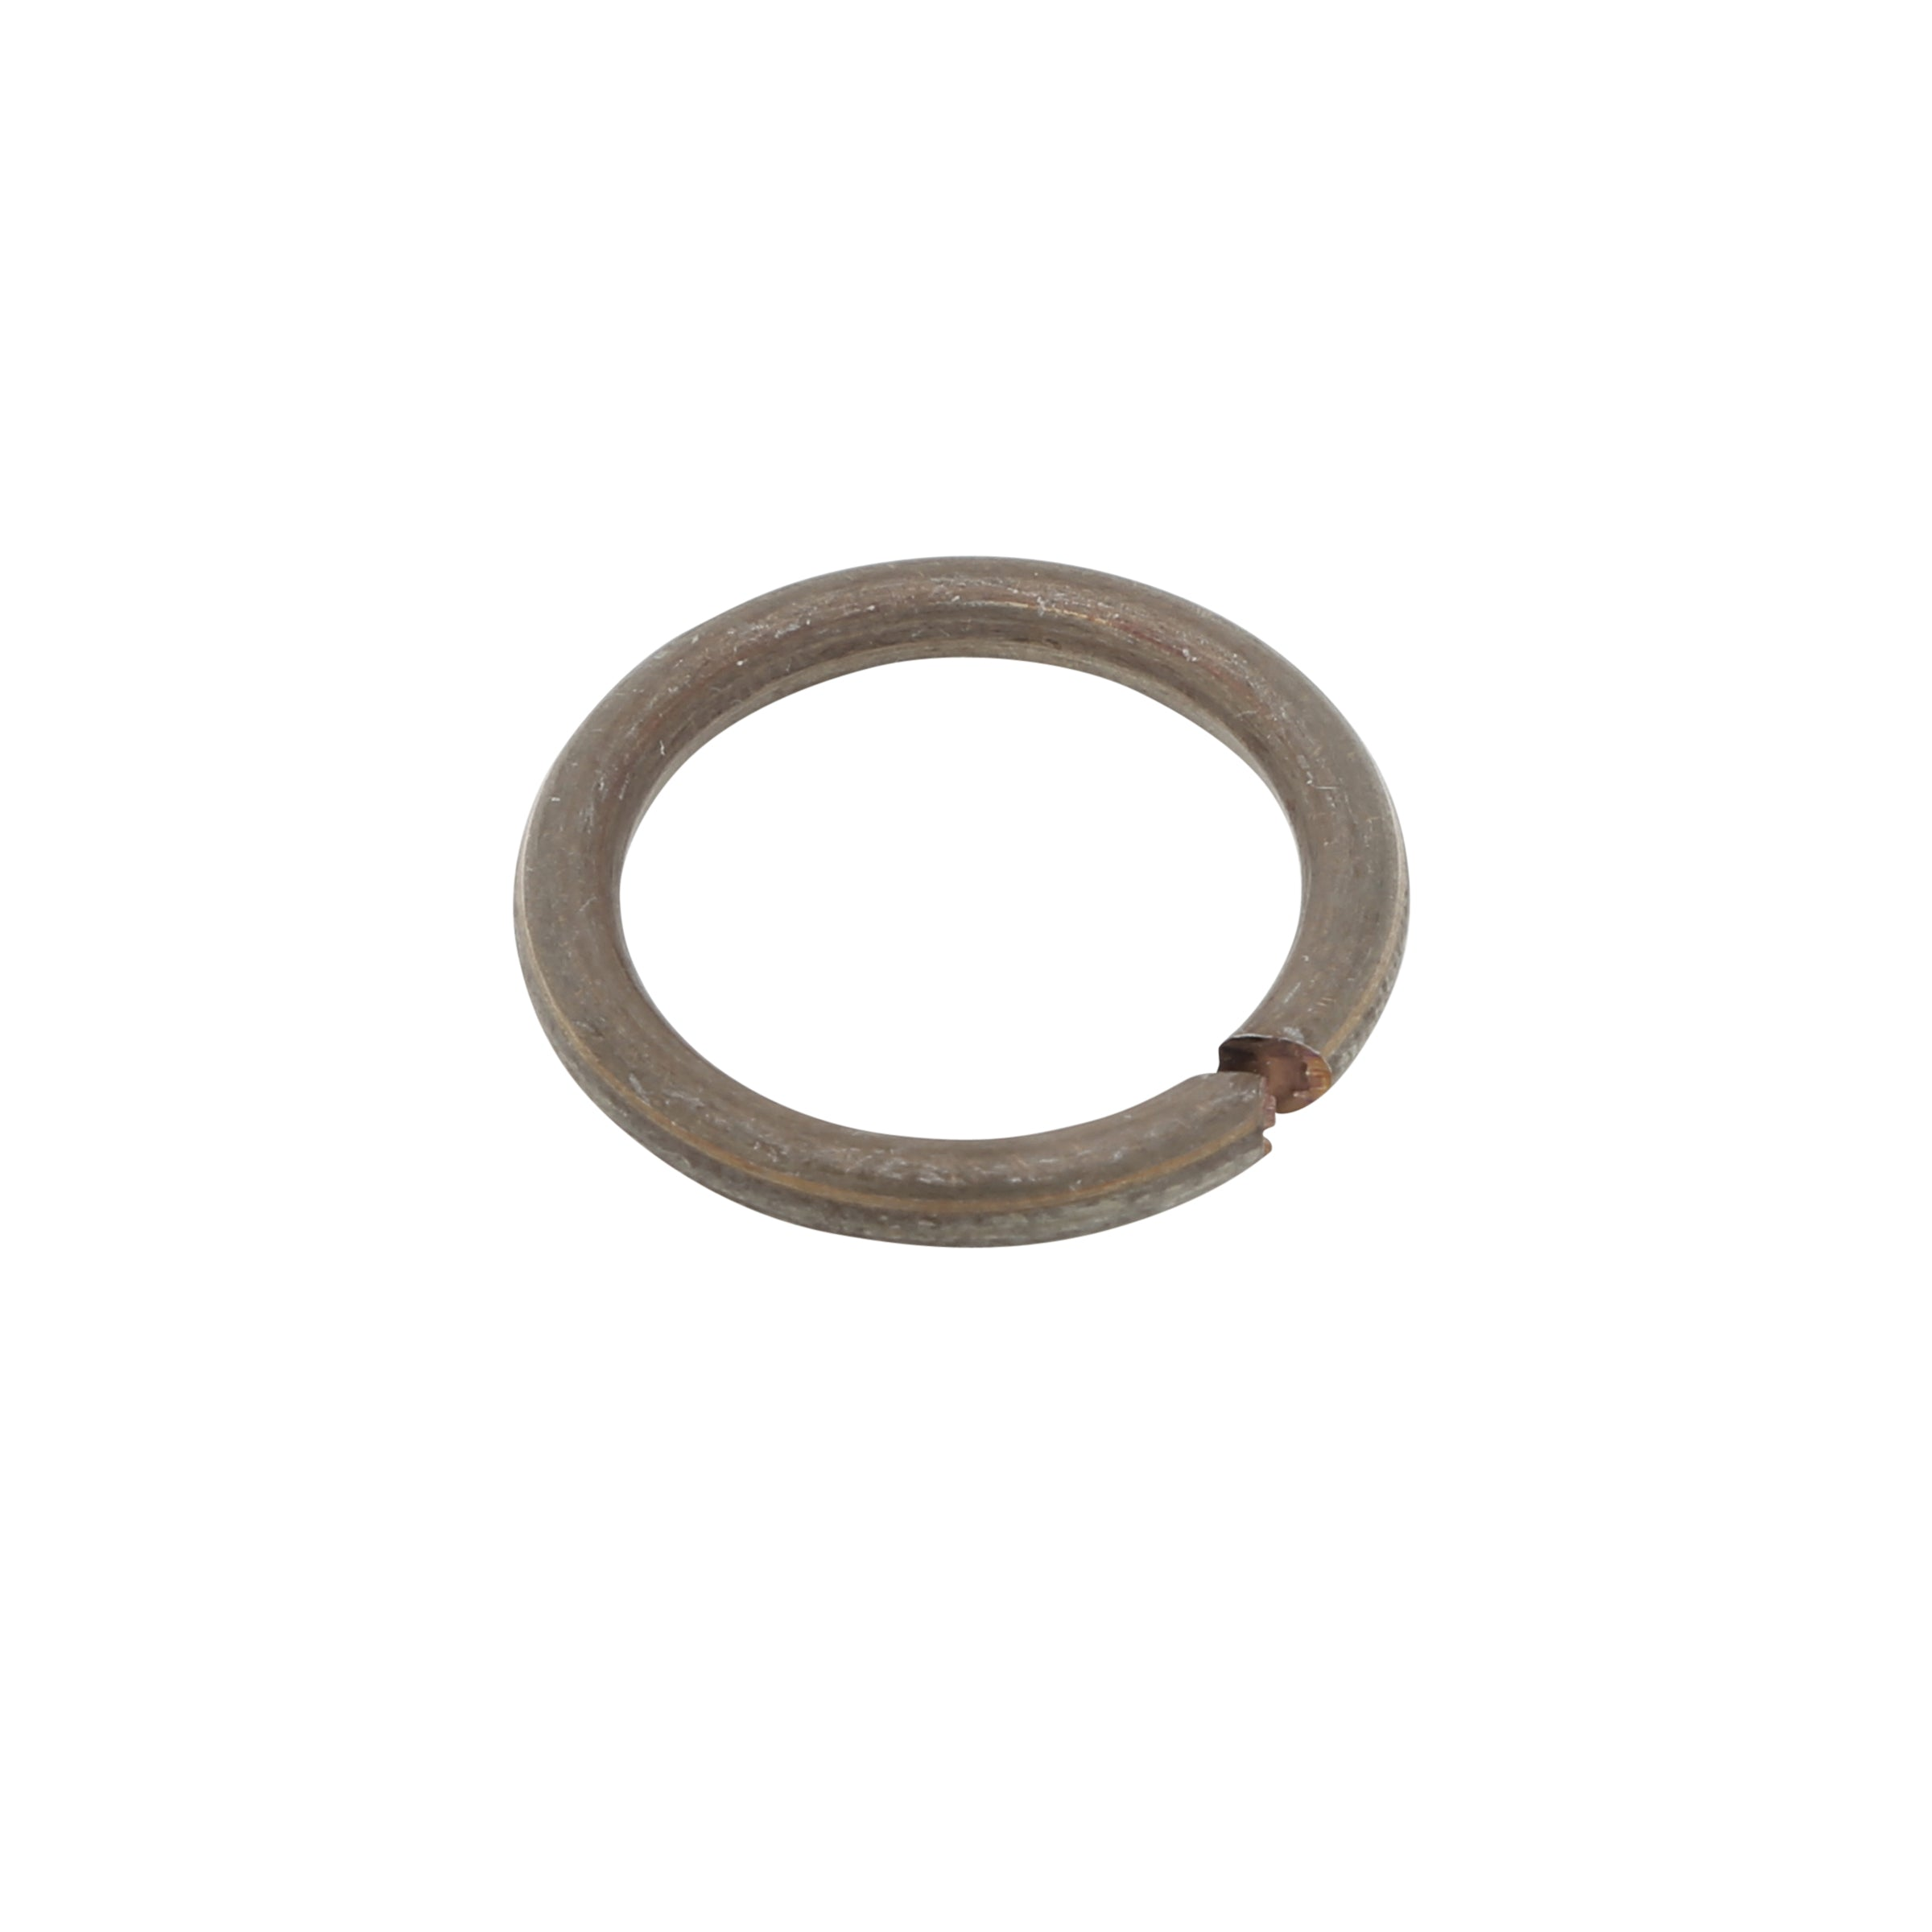 Main Shaft Pilot Bearing Spacer • 1928-31 Model A Ford